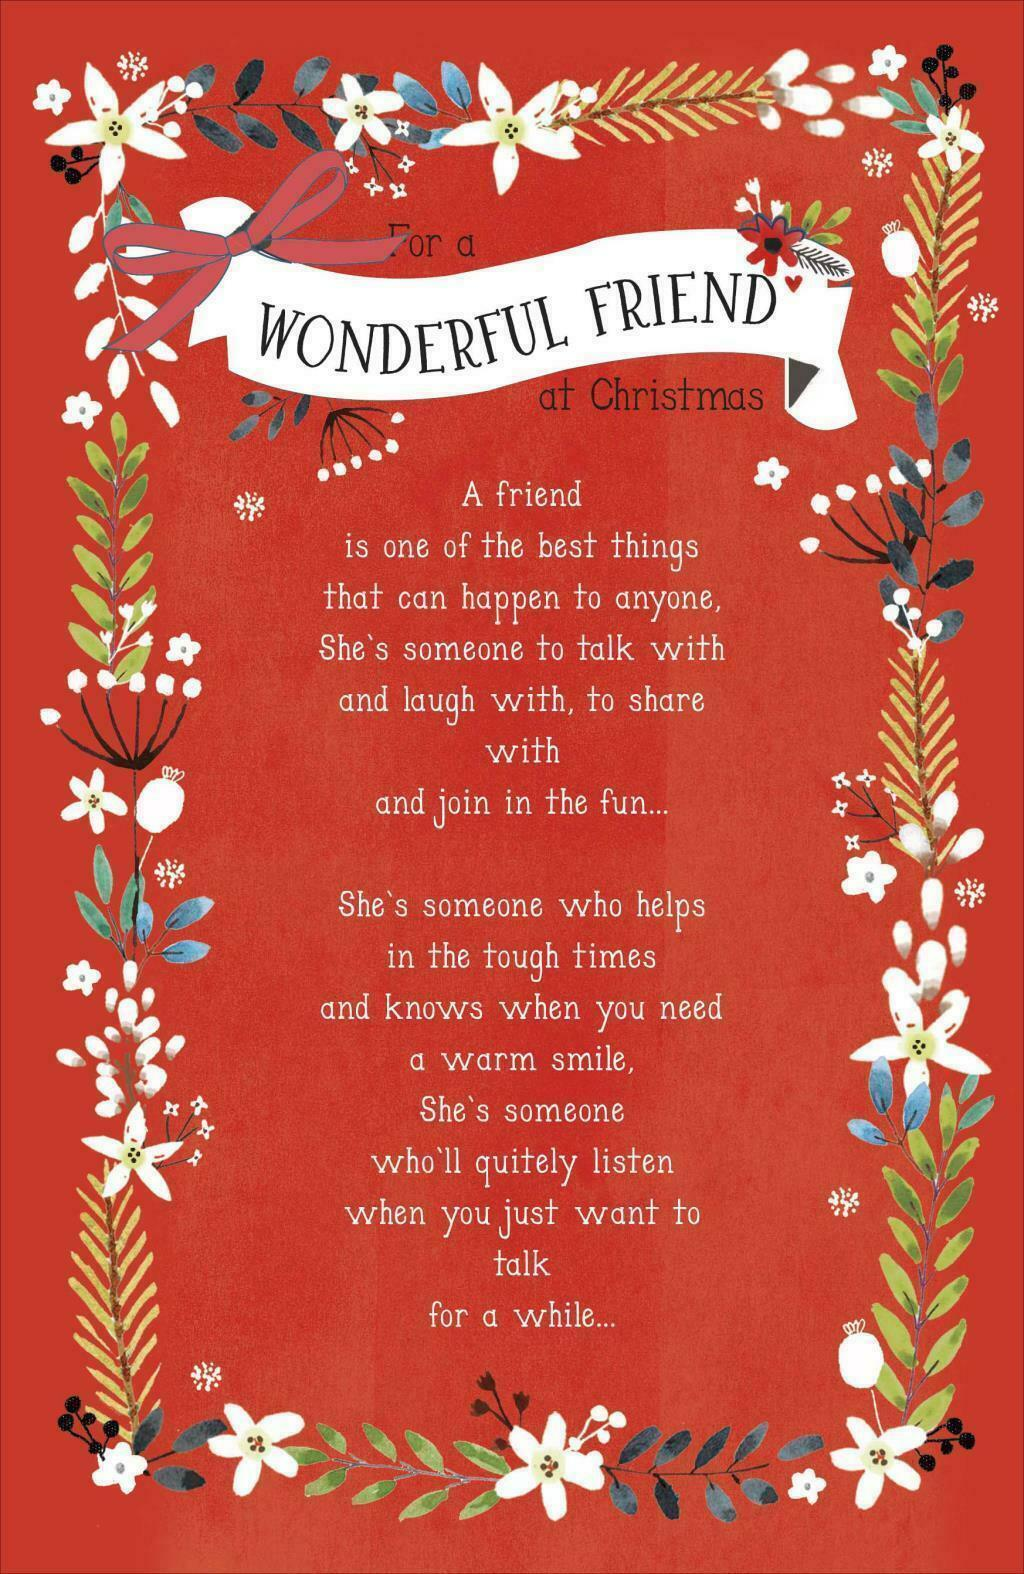 What is a friend floral nice sentimental verse christmas greeting what is a friend floral nice sentimental verse christmas greeting card 1 of 1only 5 available m4hsunfo